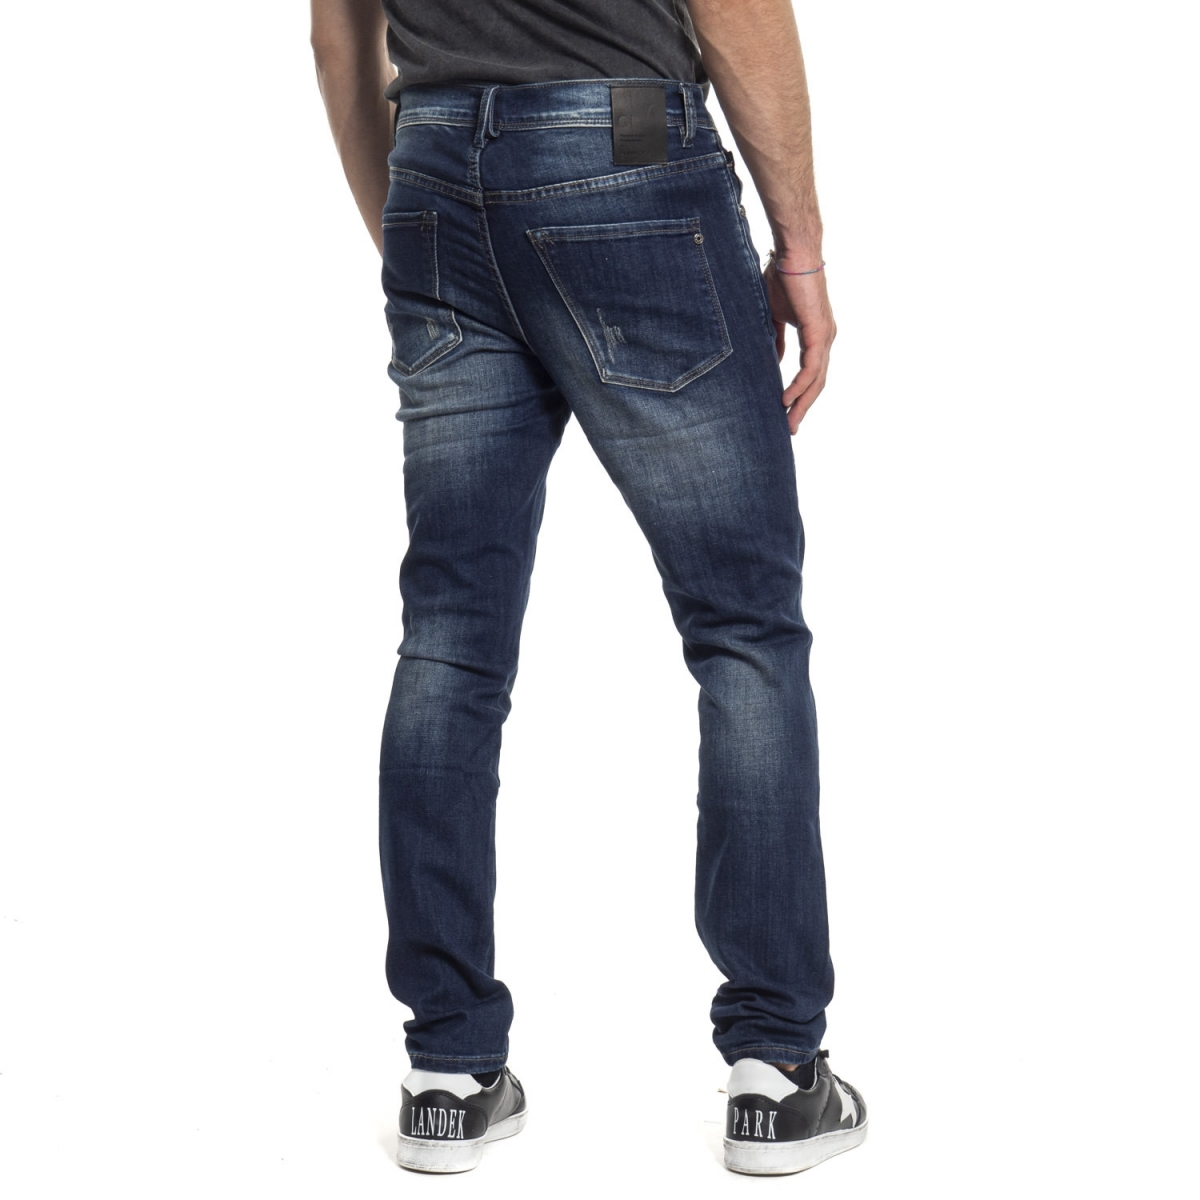 clothing Denim men Jeans GL717Y GIANNI LUPO Cafedelmar Shop